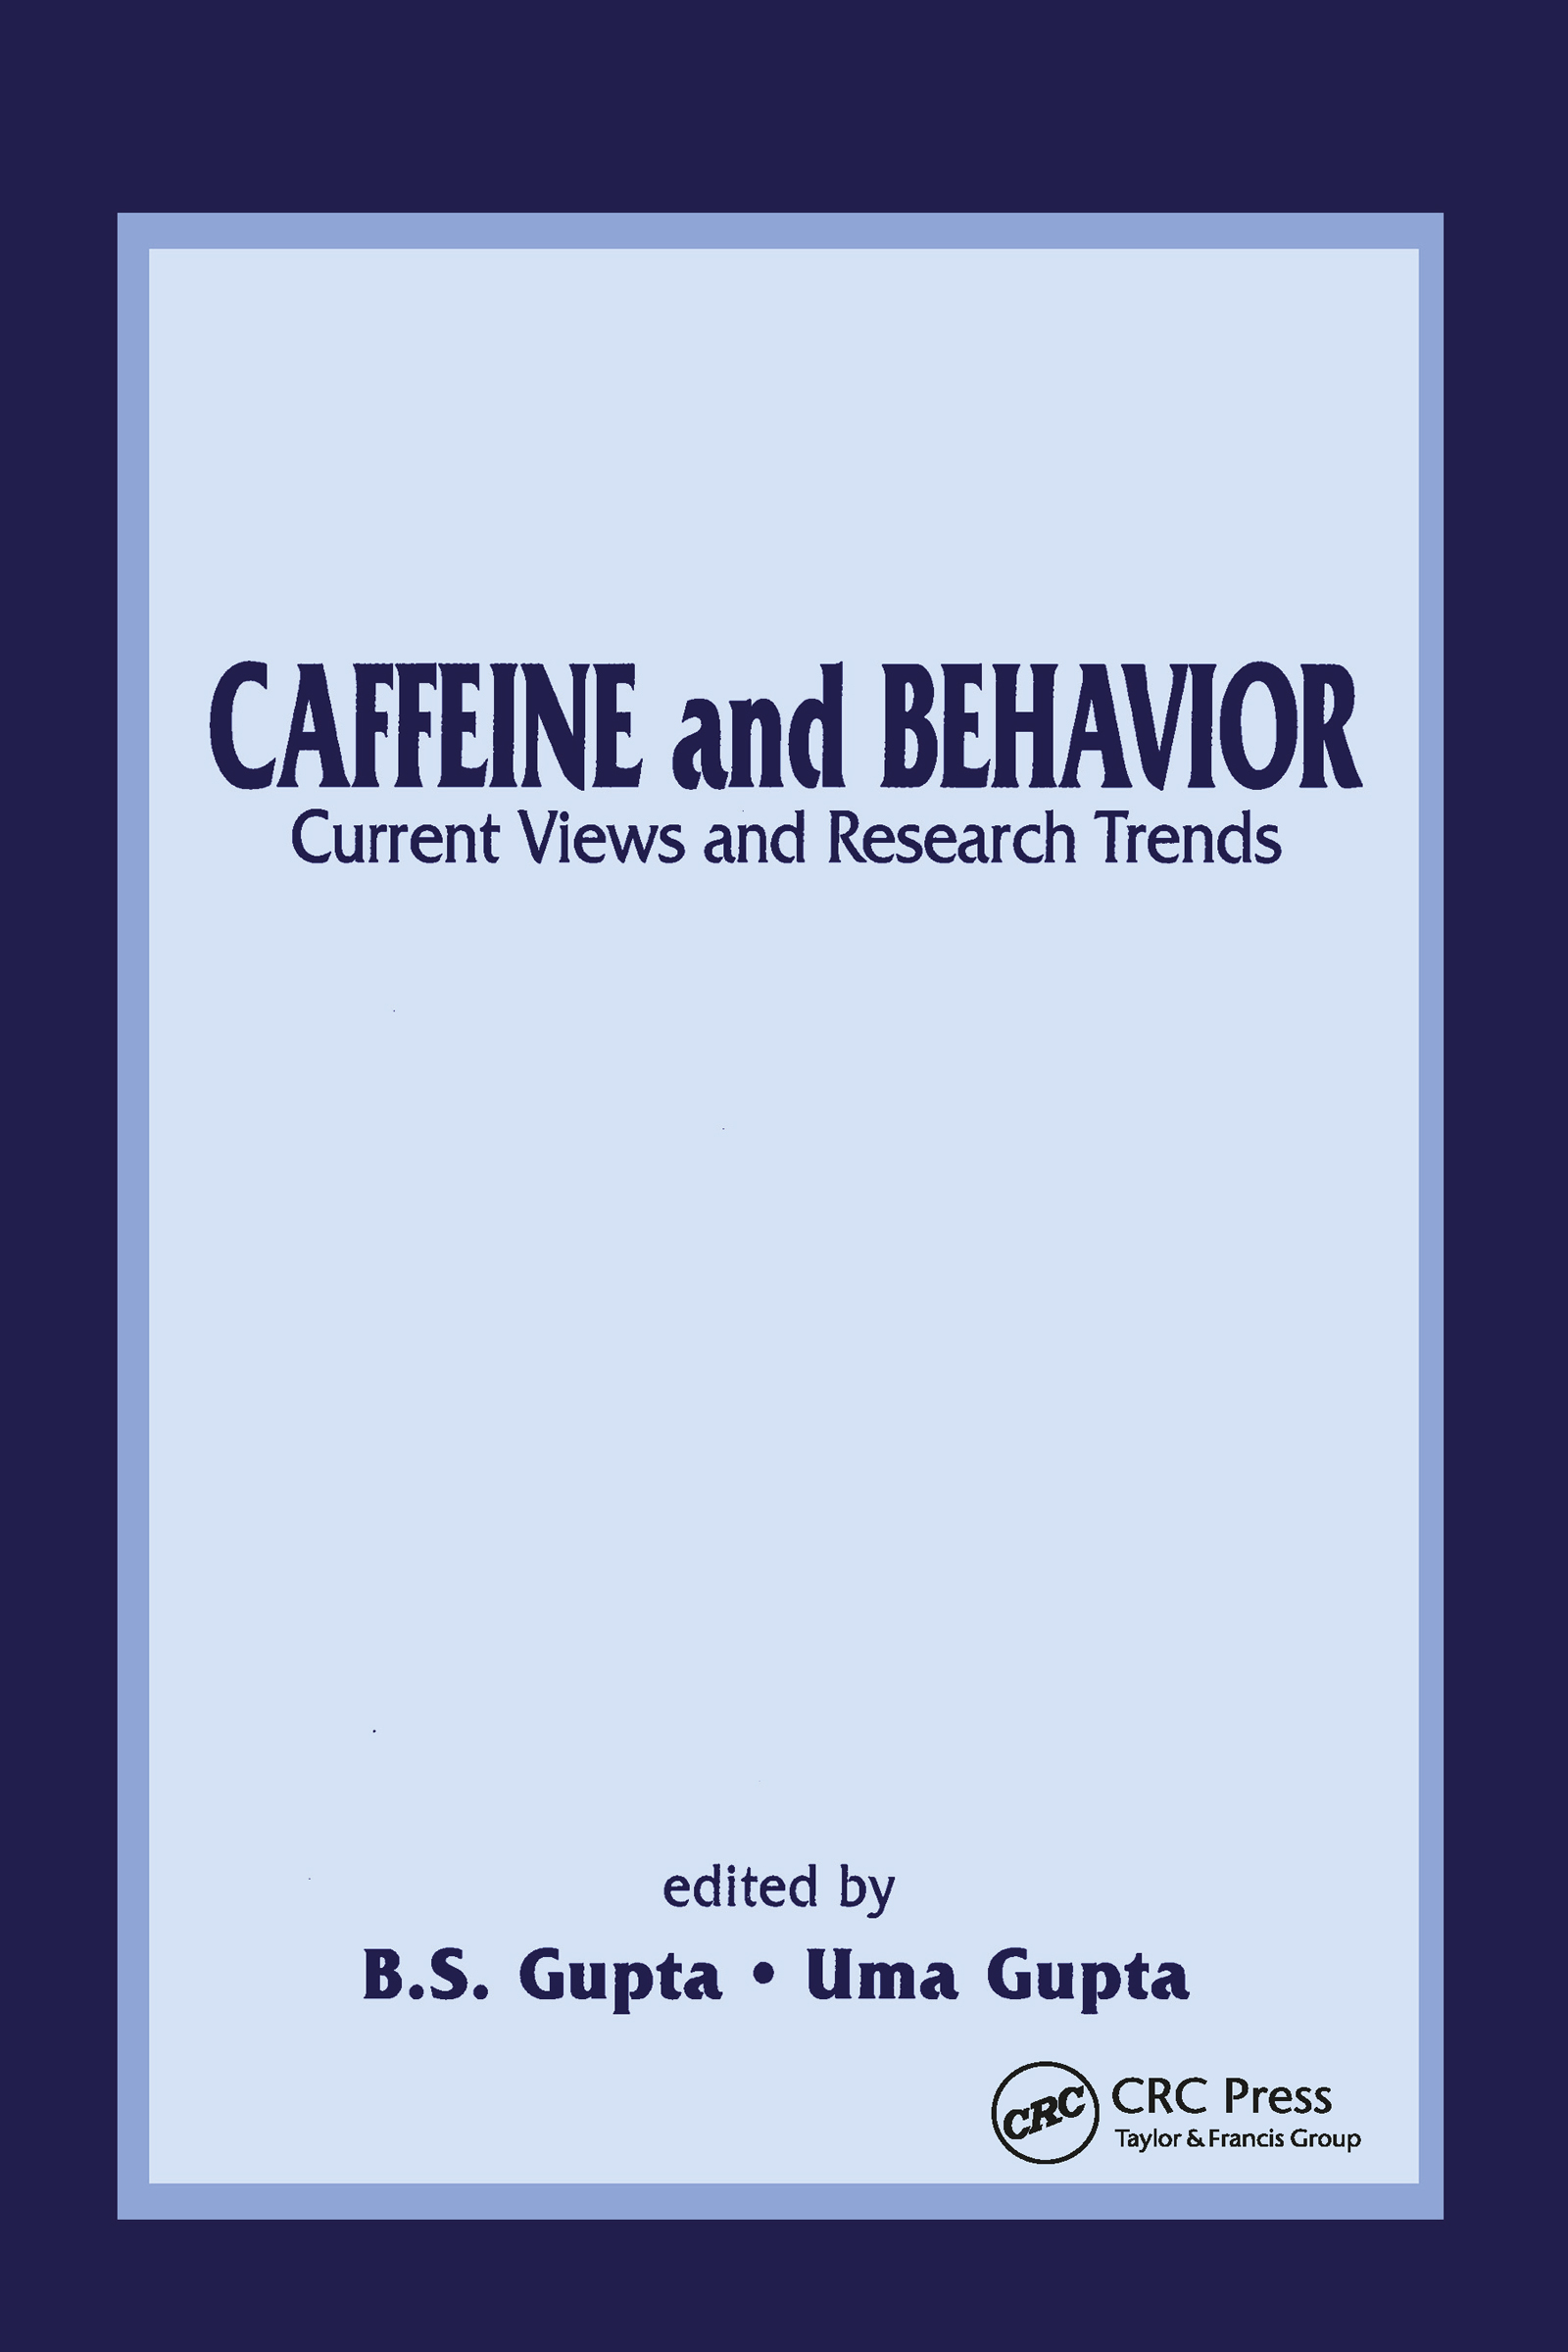 The association of anxiety, depression, and headache with caffeine use